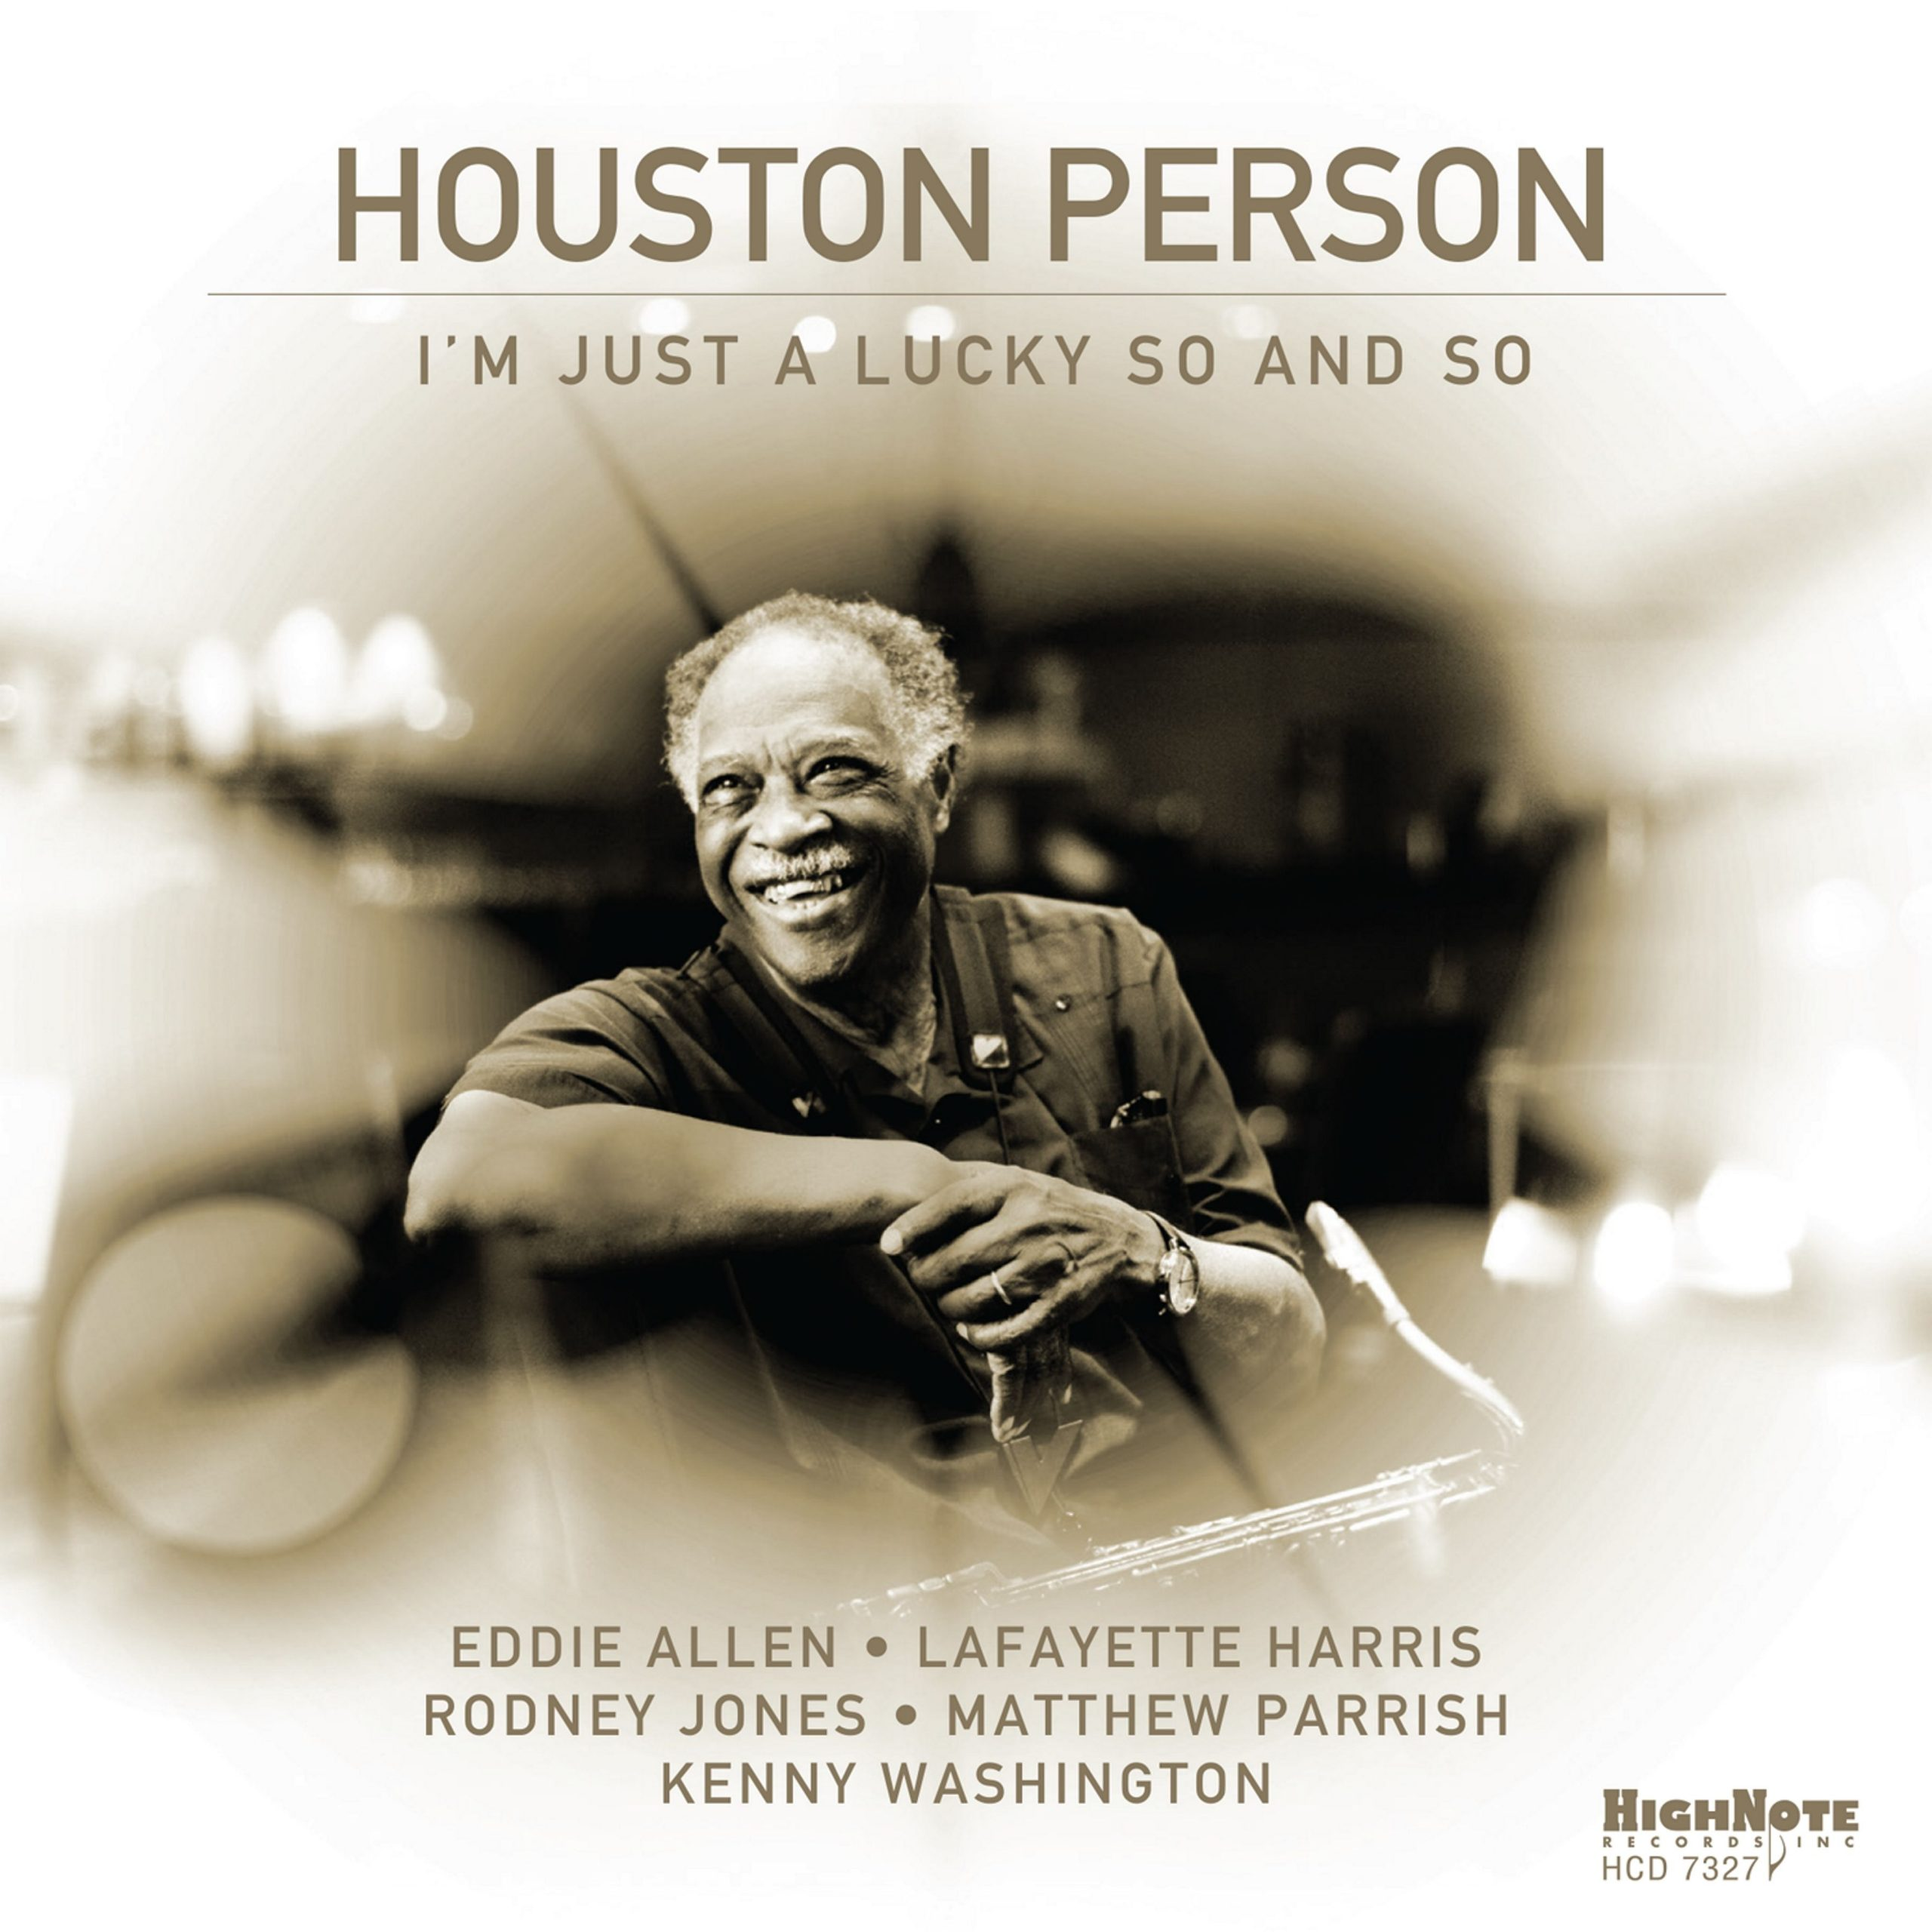 Houston Person - I'm Just a Lucky So and So (2020)